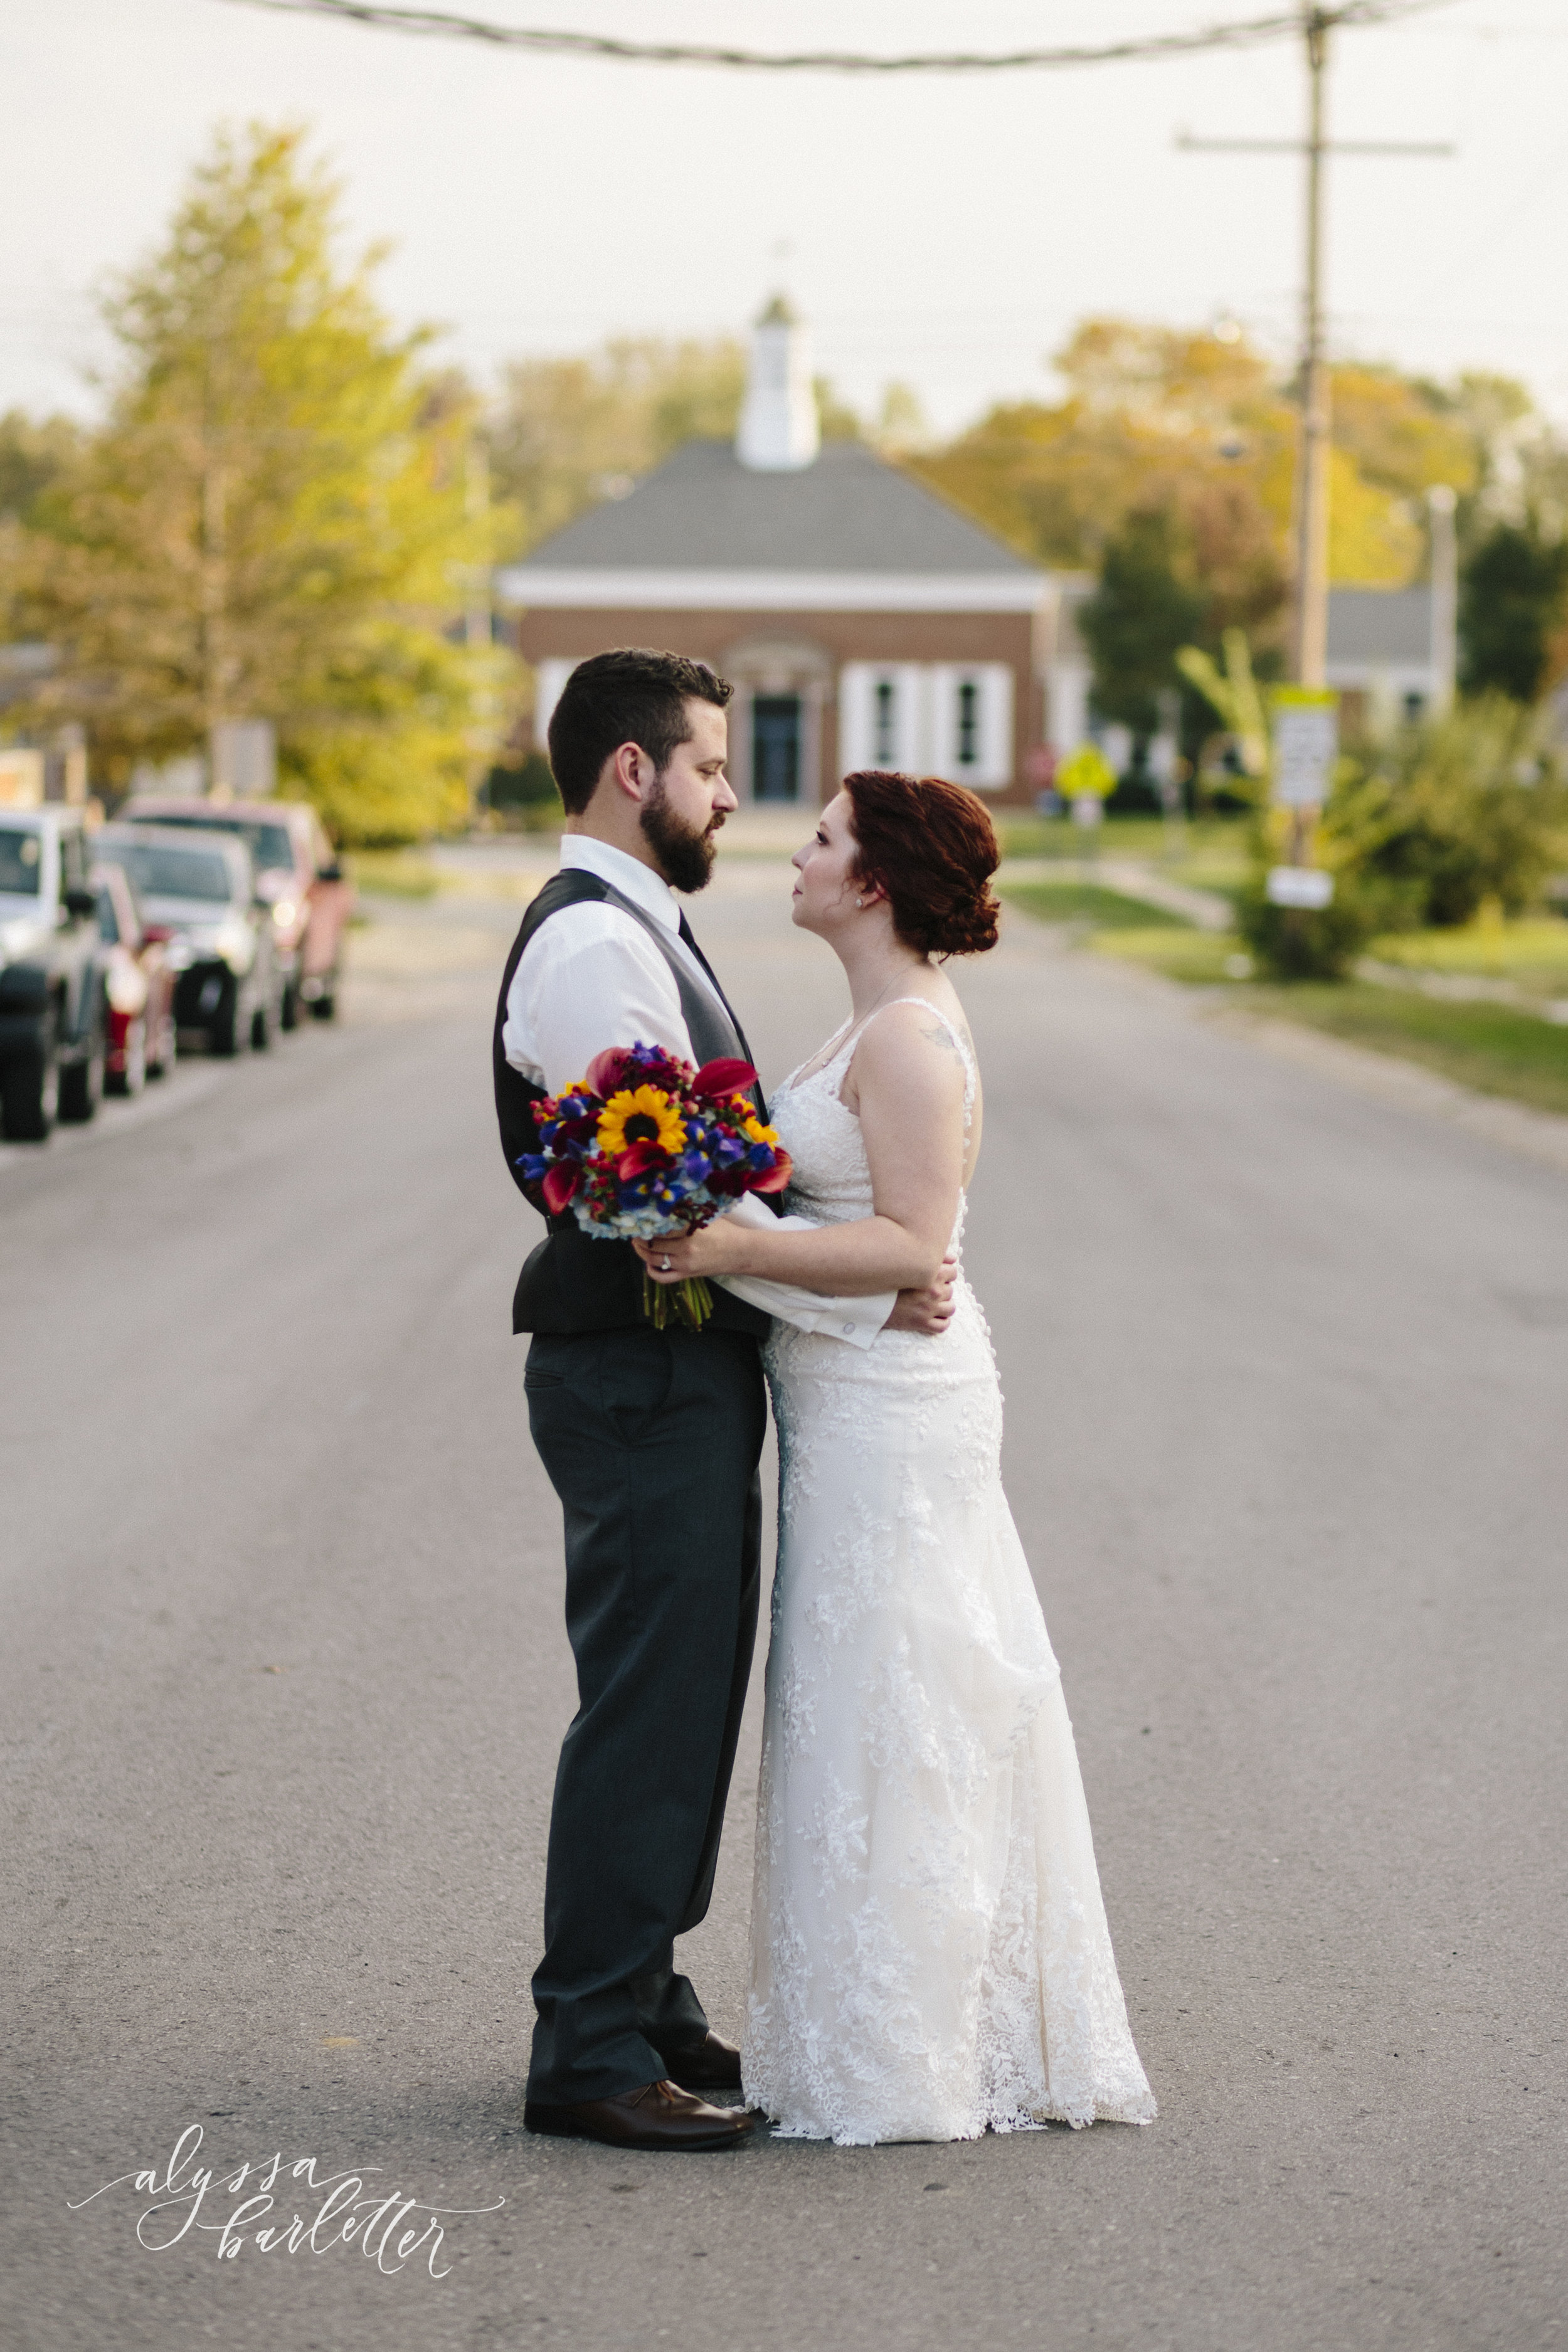 alyssa barletter photography wedding liberty missouri hipster quirky alex and shawn-1-39.jpg